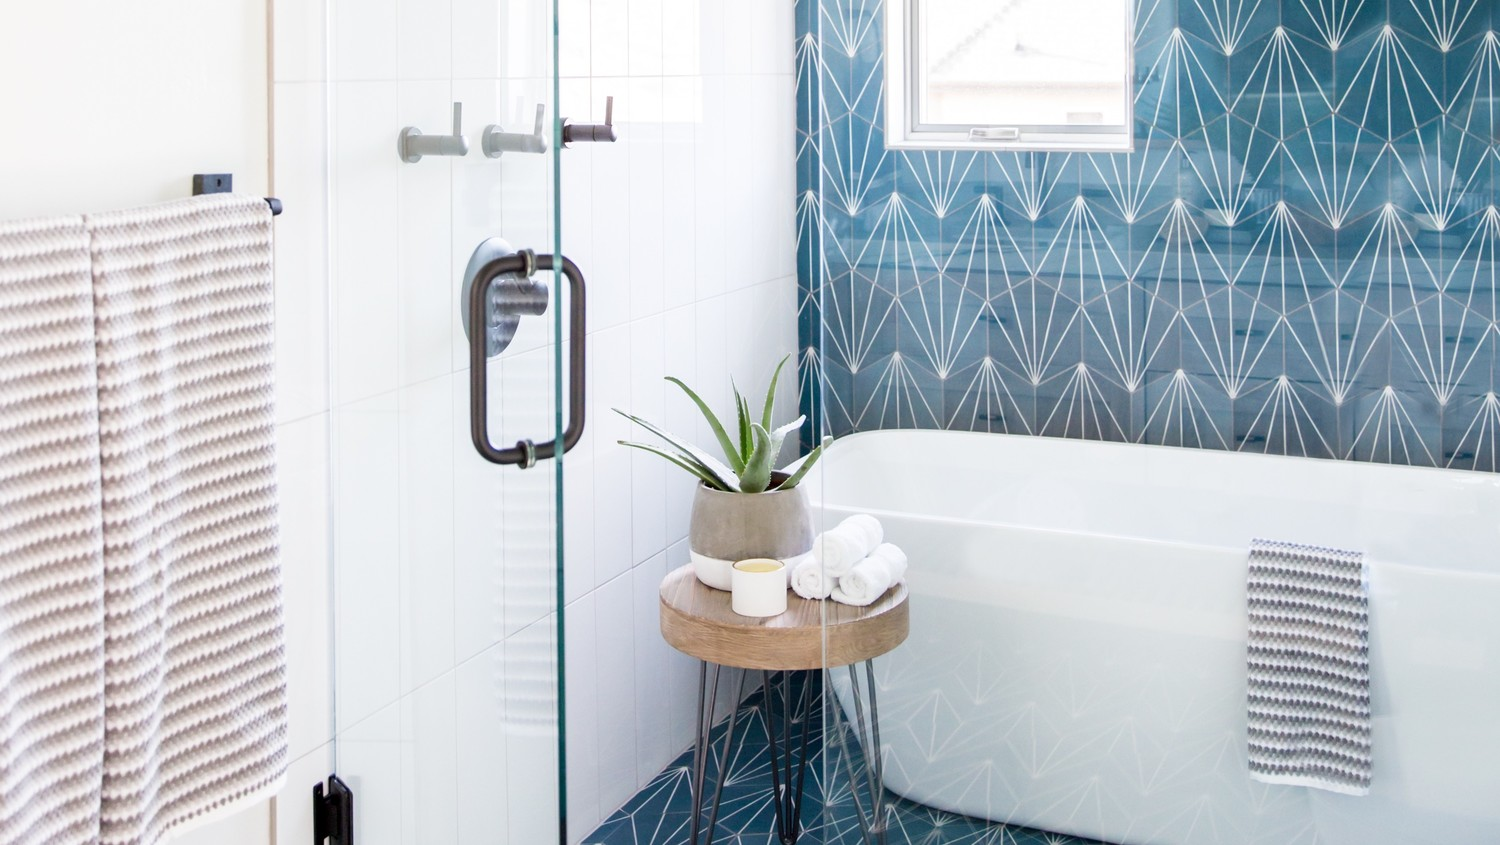 High-Tech Shower Upgrades You Didn't Know Your Bathroom Needed